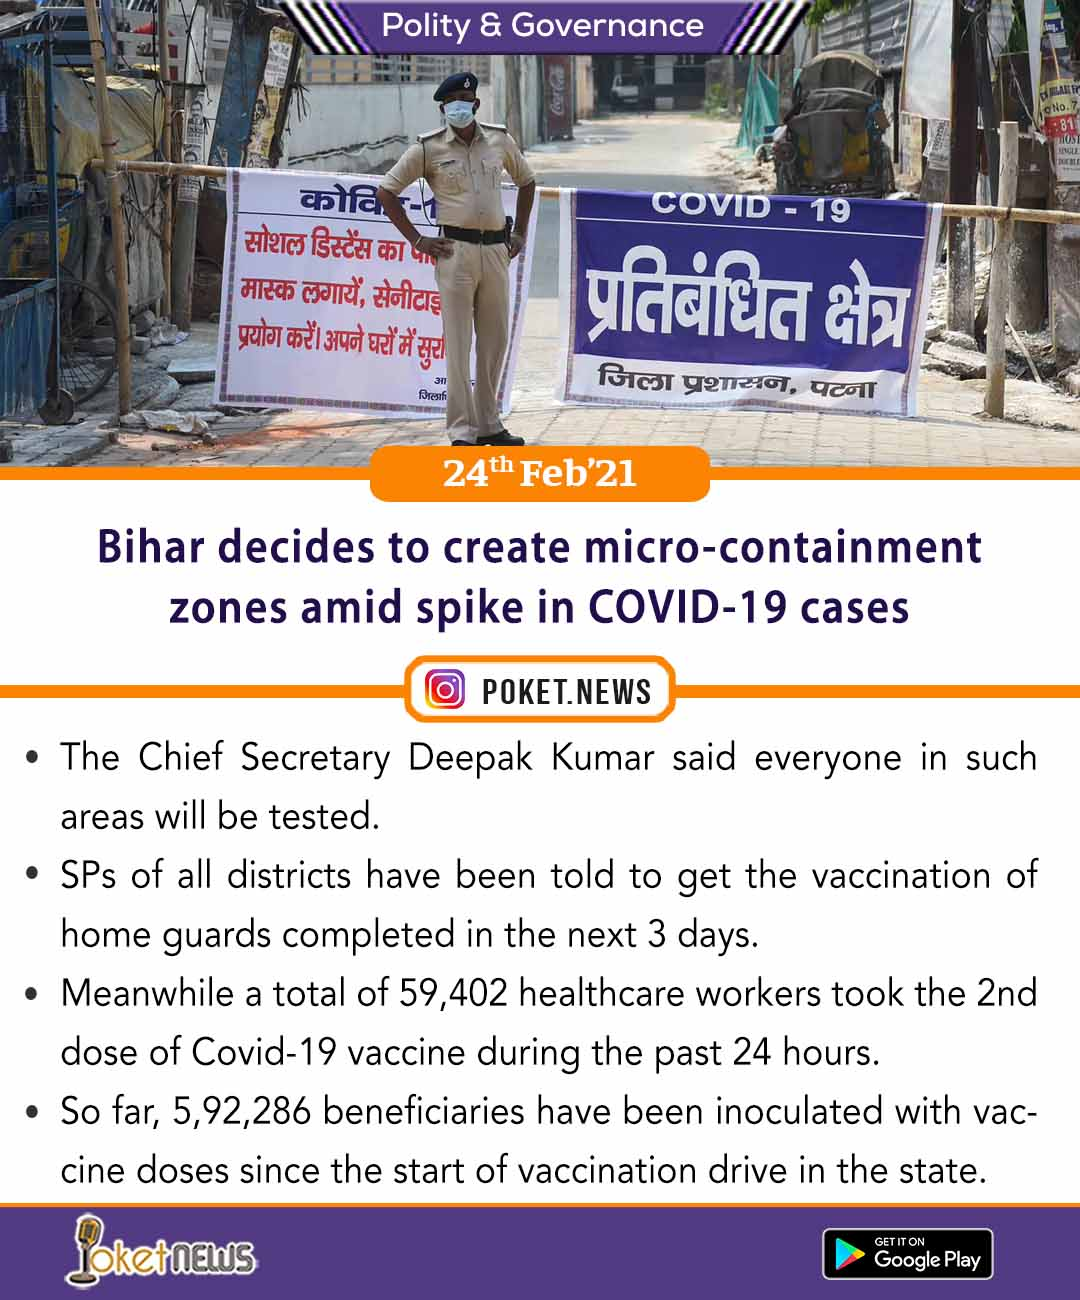 Bihar decides to create micro-containment zones amid spike in COVID-19 cases